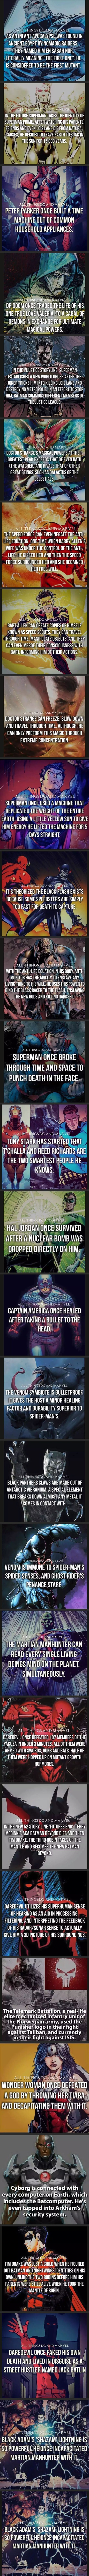 All Things Marvel and DC - Fact Dump #lol #haha #funny